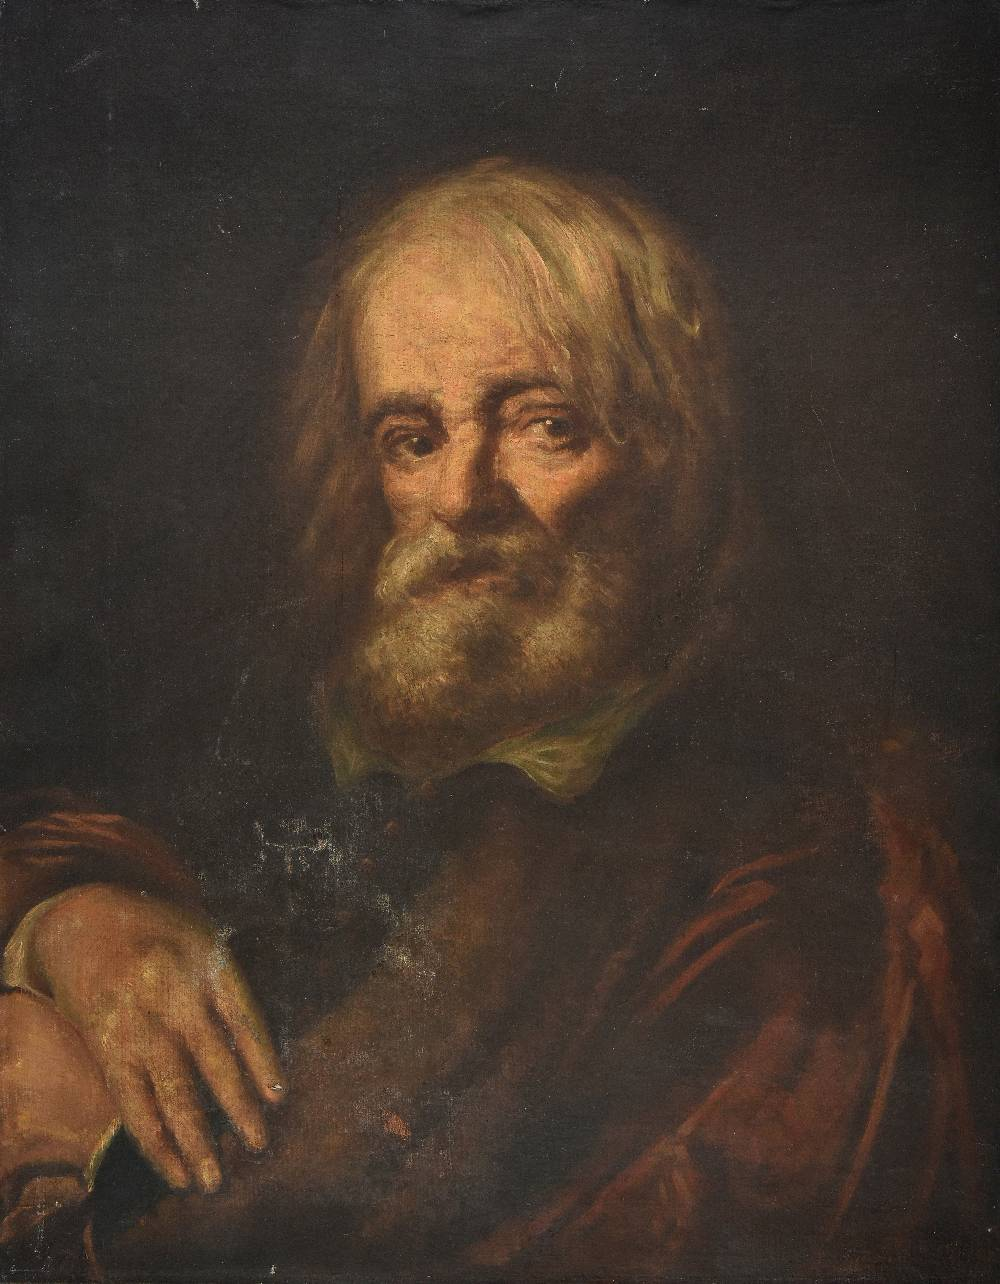 Lot 9 - *Bolognese School. Portrait of a bearded old man, late 17th or early 18th century, oil on canvas,